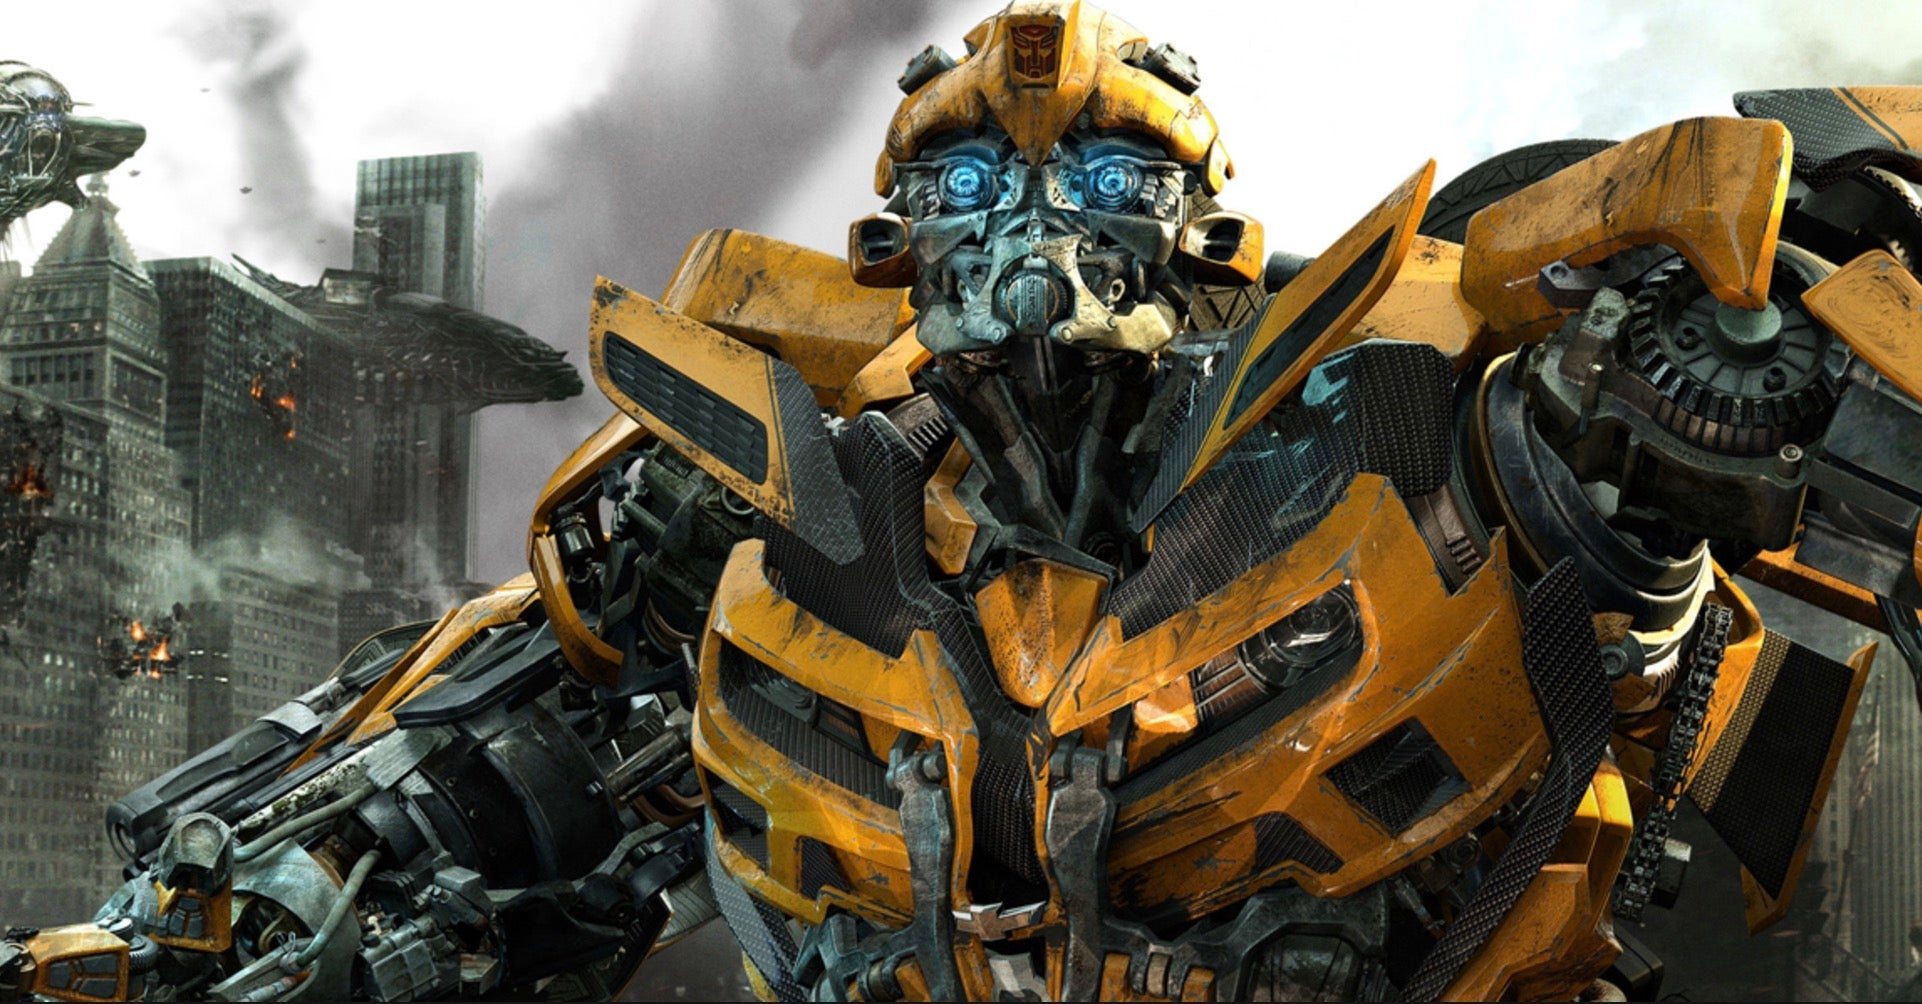 It Sounds Like Even The Bumblebee Spinoff Movie Won't Focus On The Transformers